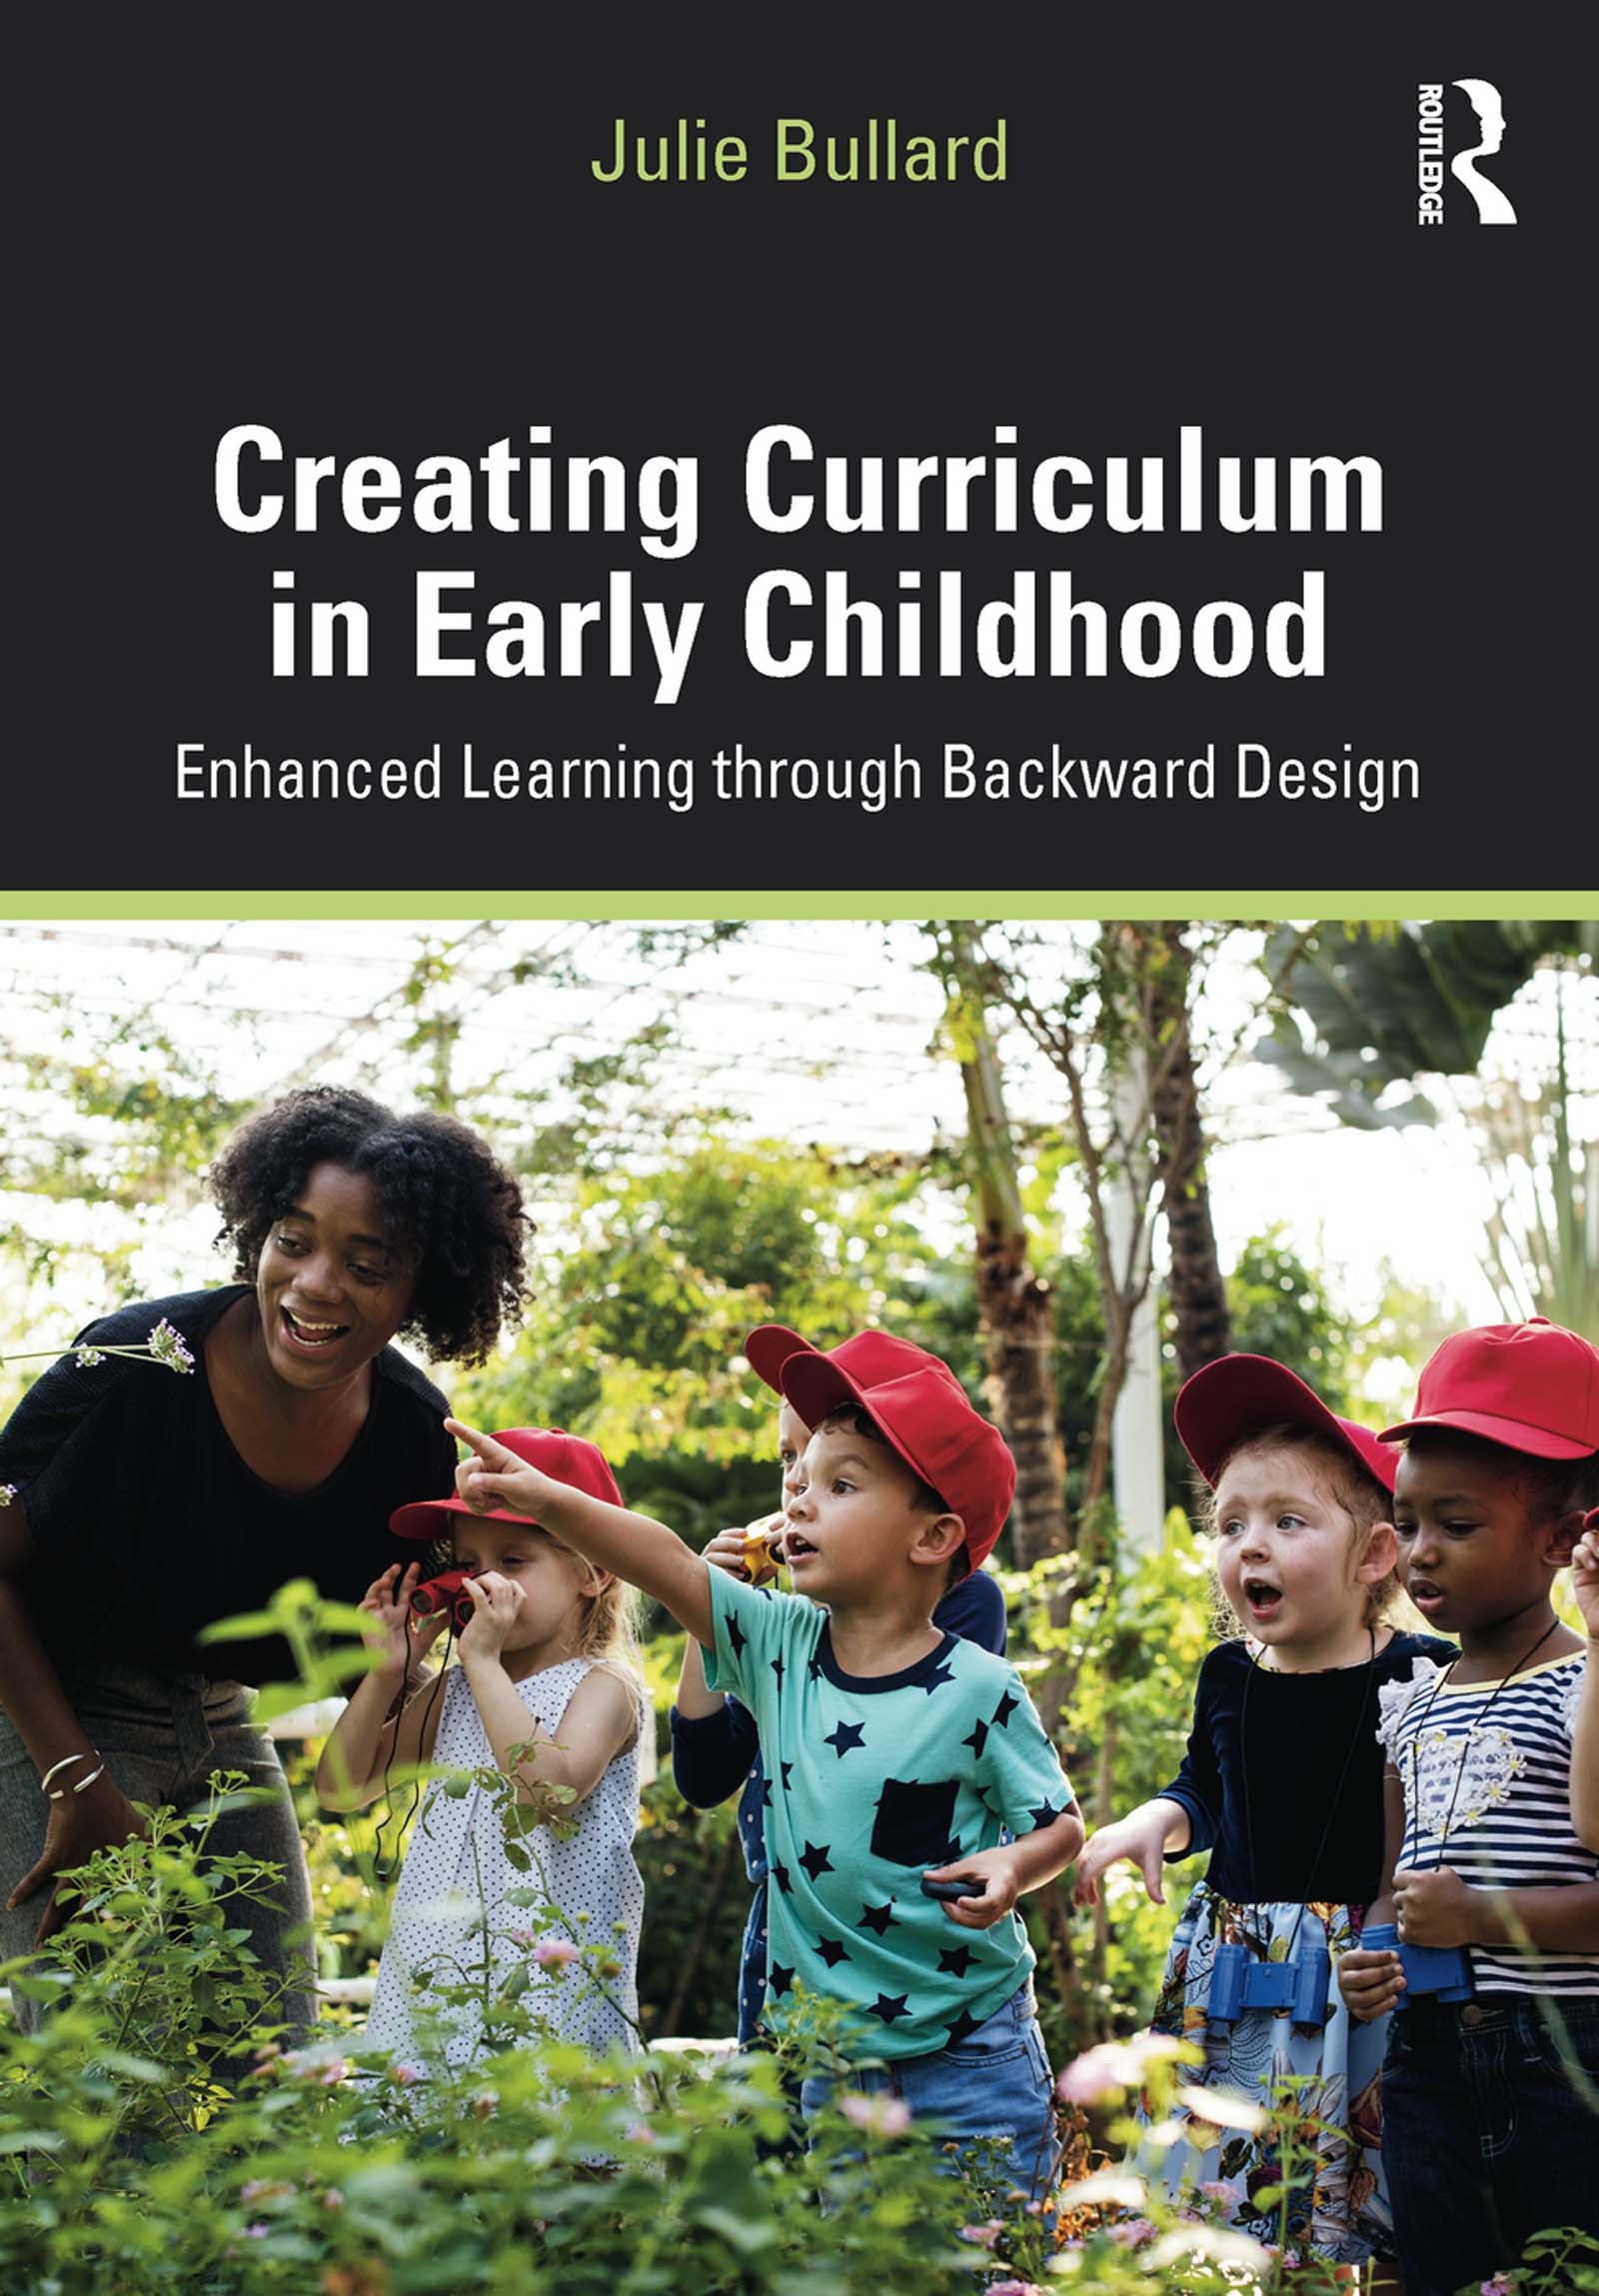 Creating Curriculum in Early Childhood: Enhanced Learning through Backward Design book cover